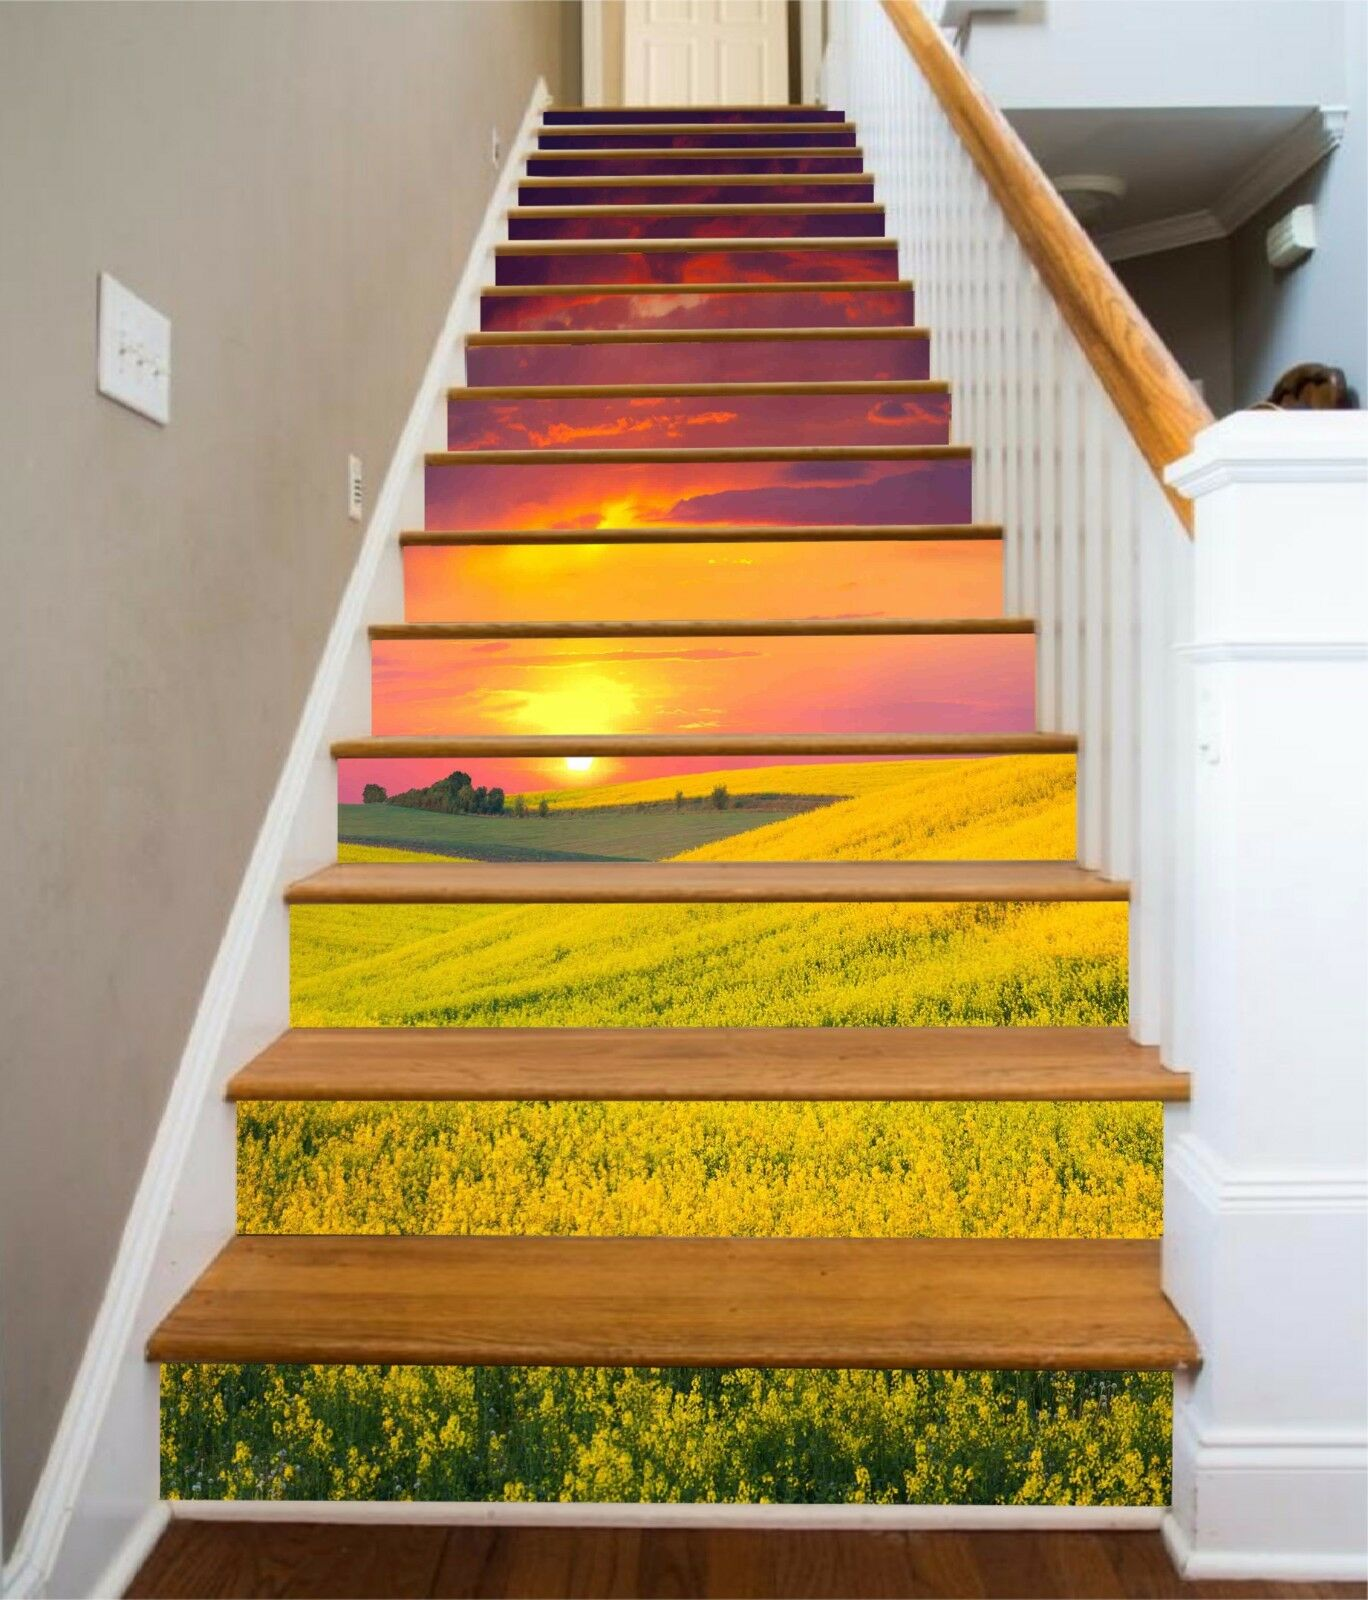 3D Sky field 357 Stair Risers Decoration Photo Mural Vinyl Decal Wallpaper UK